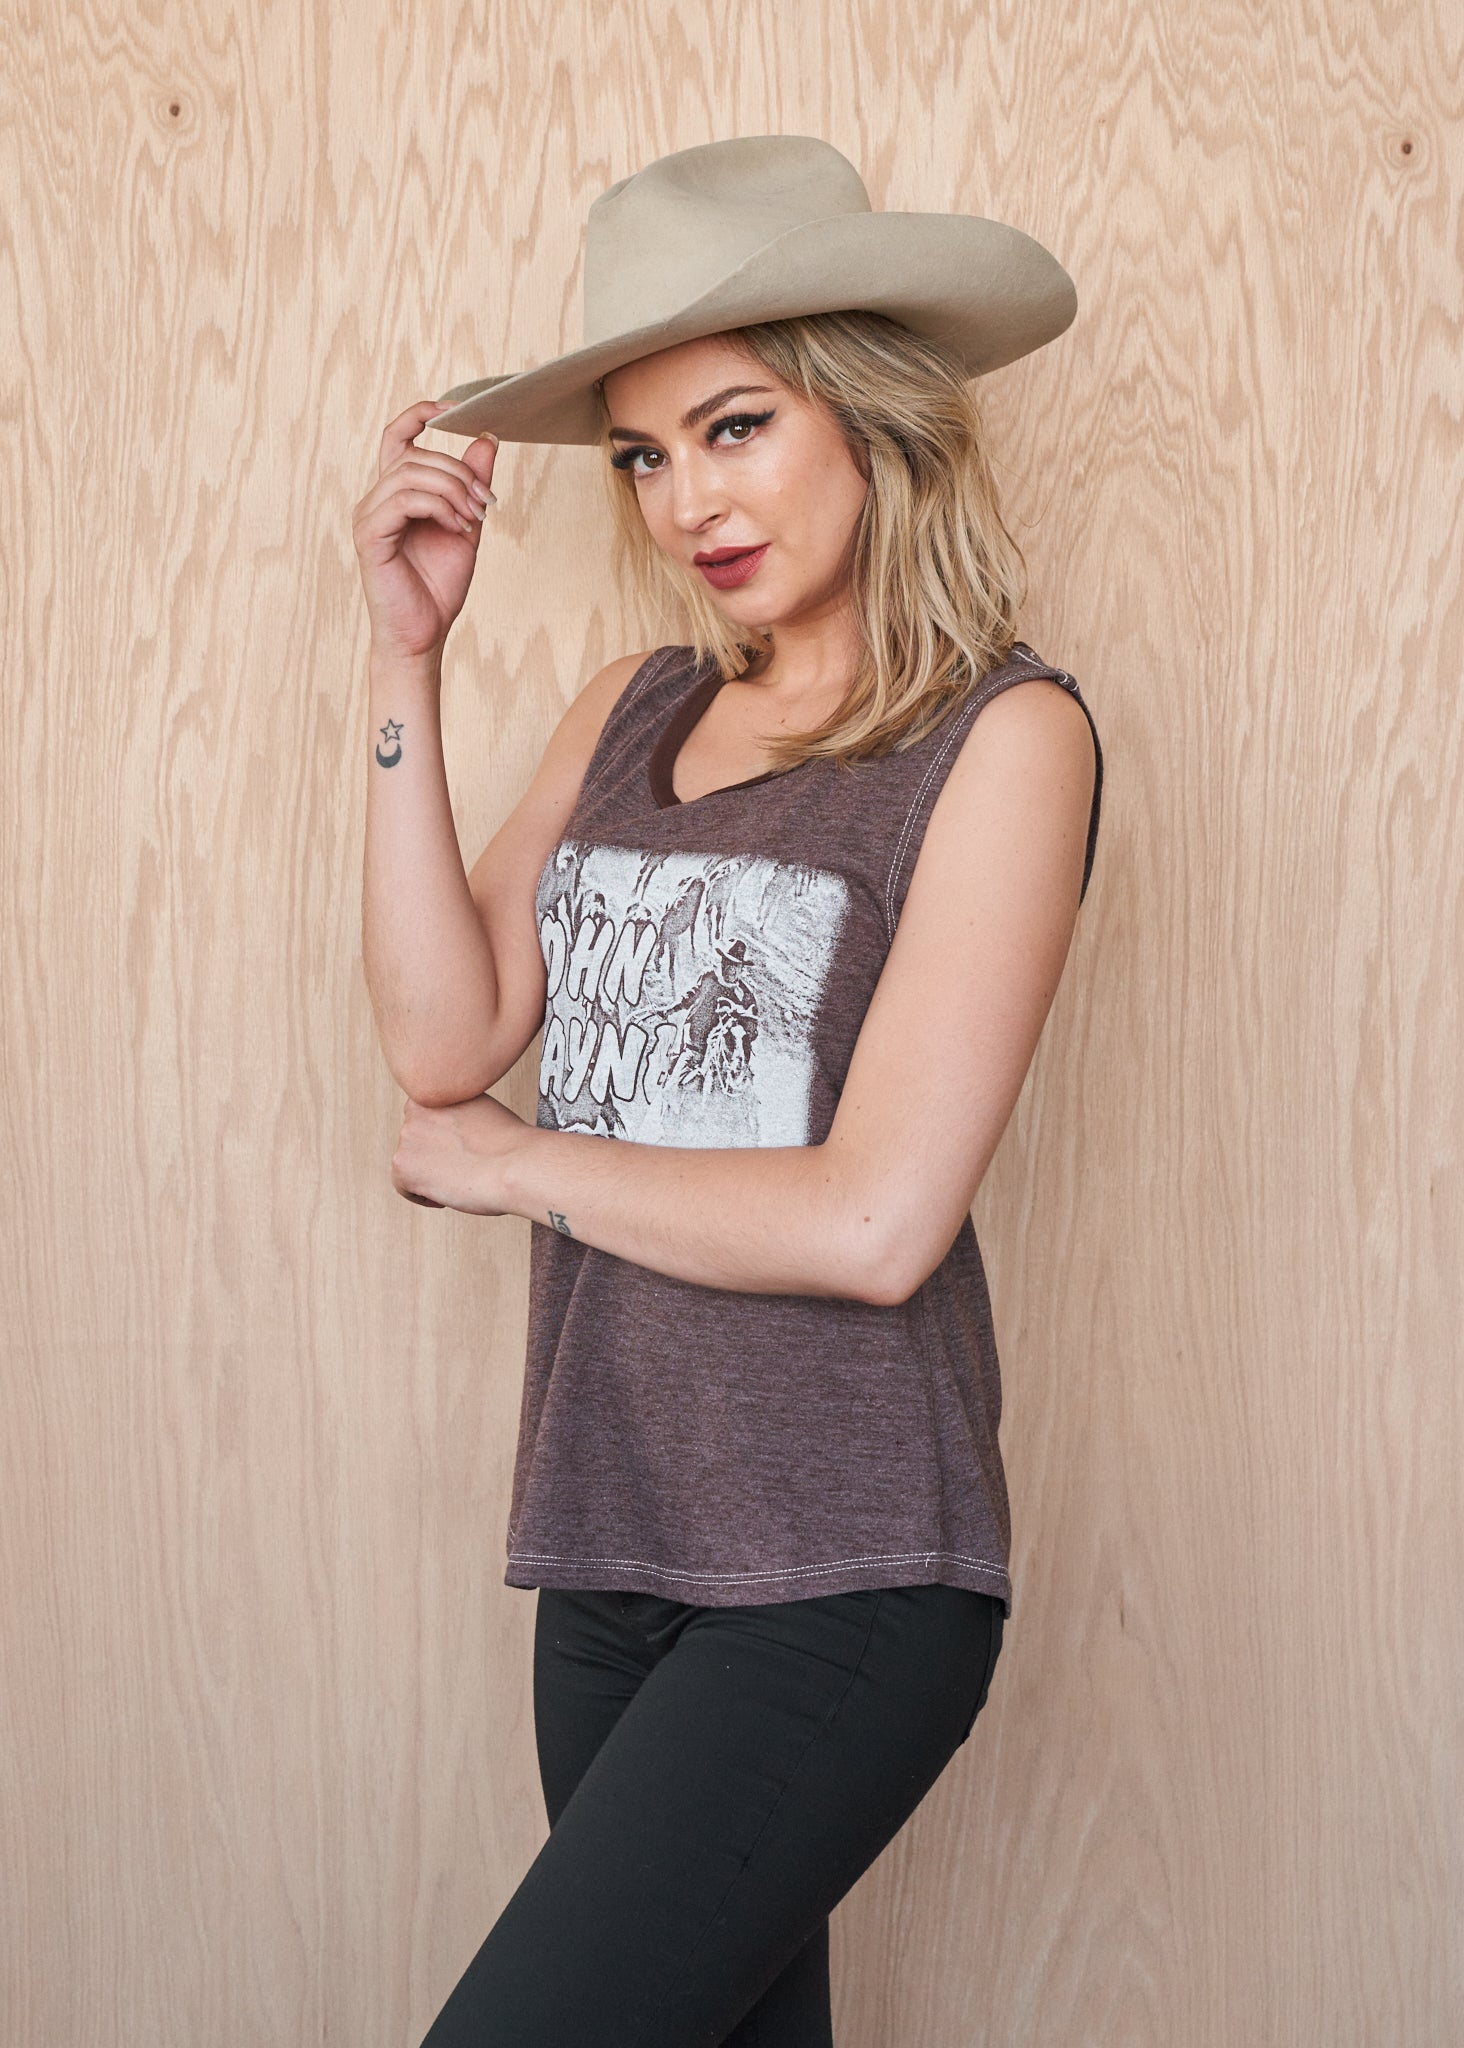 John Wayne One-Color Photo Women's Muscle Tee - Women's Muscle Tee - Midnight Rider